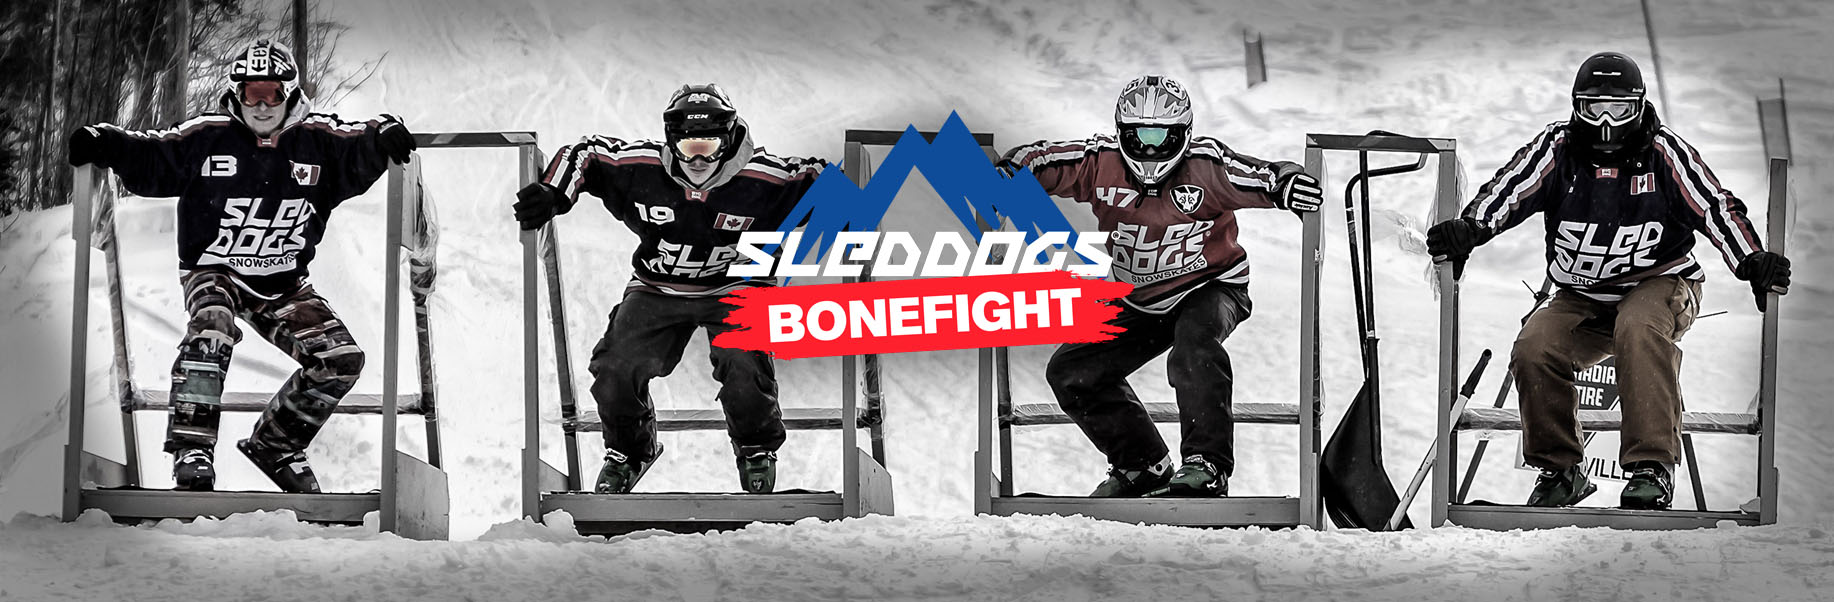 Sled Dogs Bonefight Czech republic